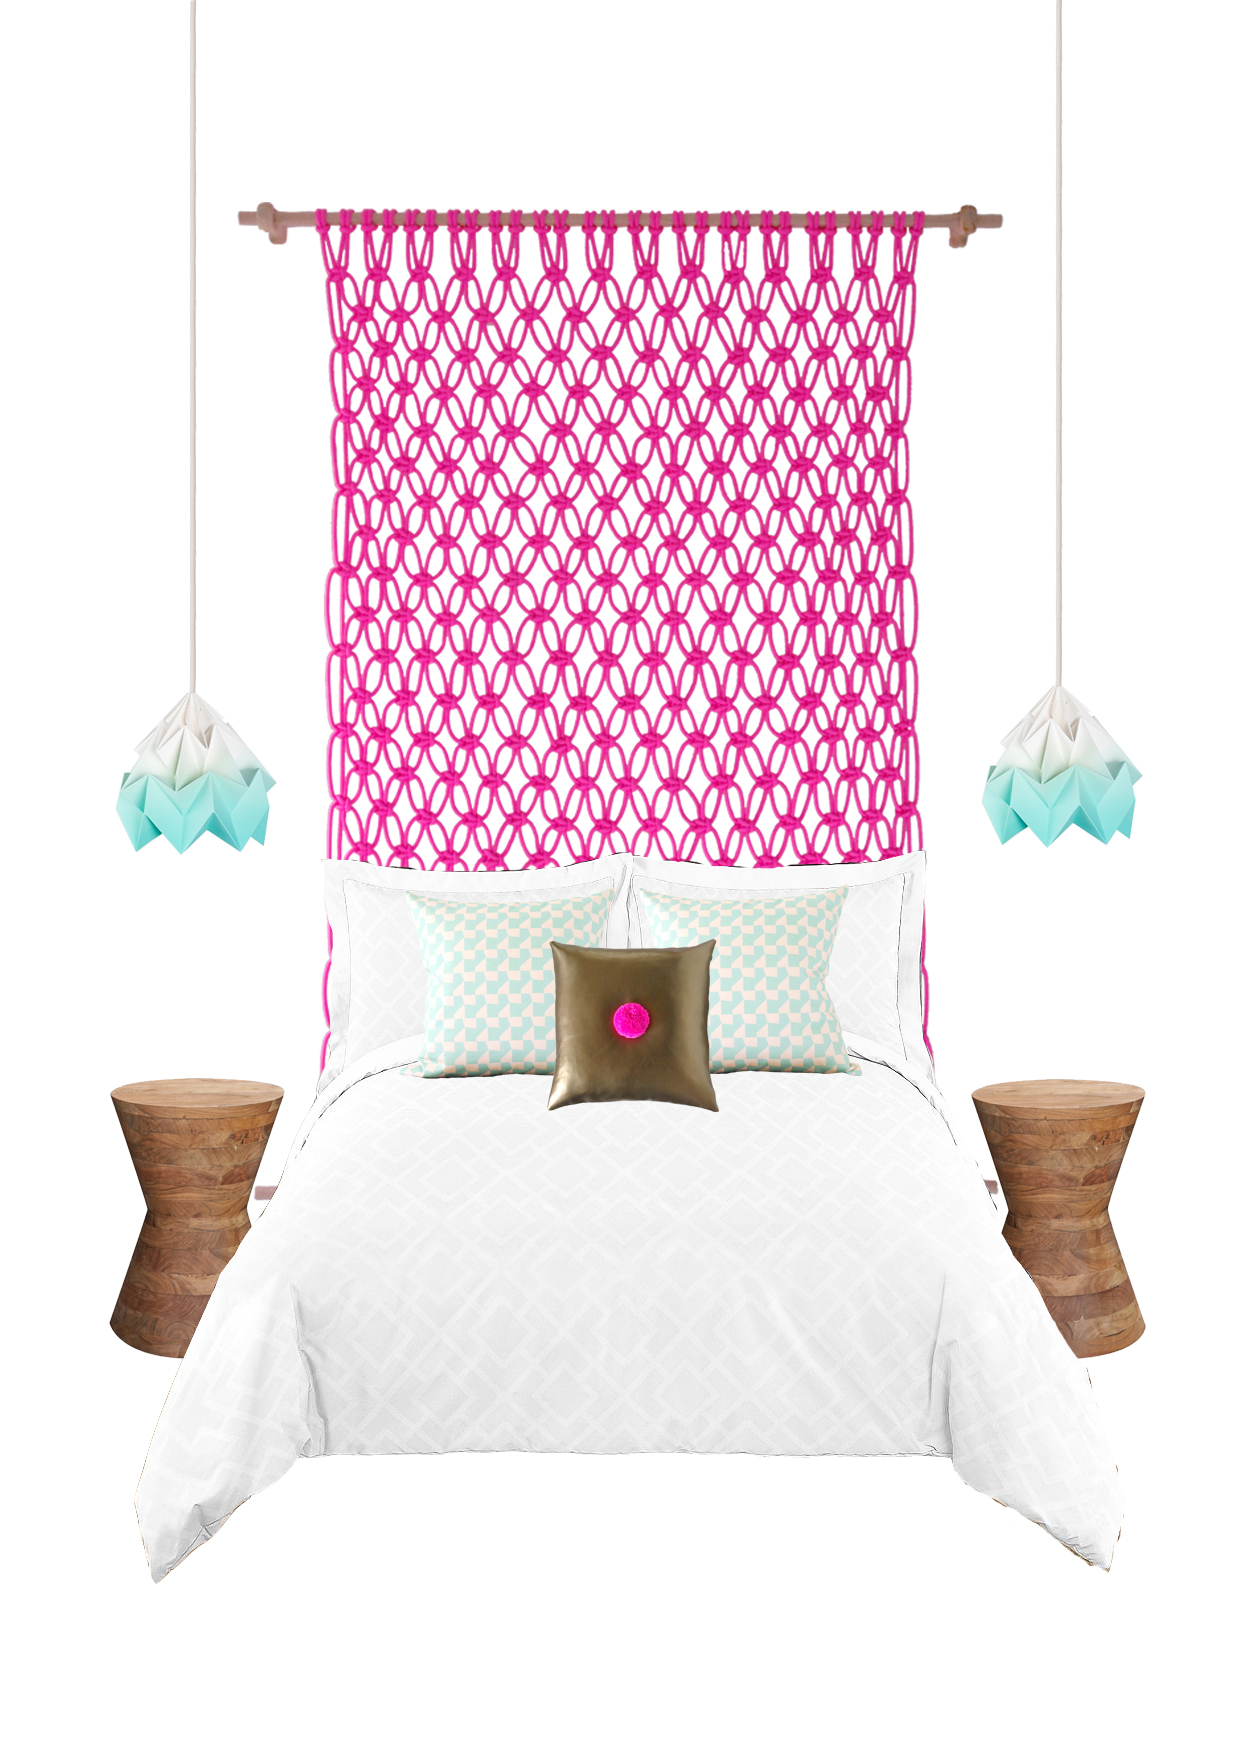 Macrame Neon Bedheads For Big Kids And Small The